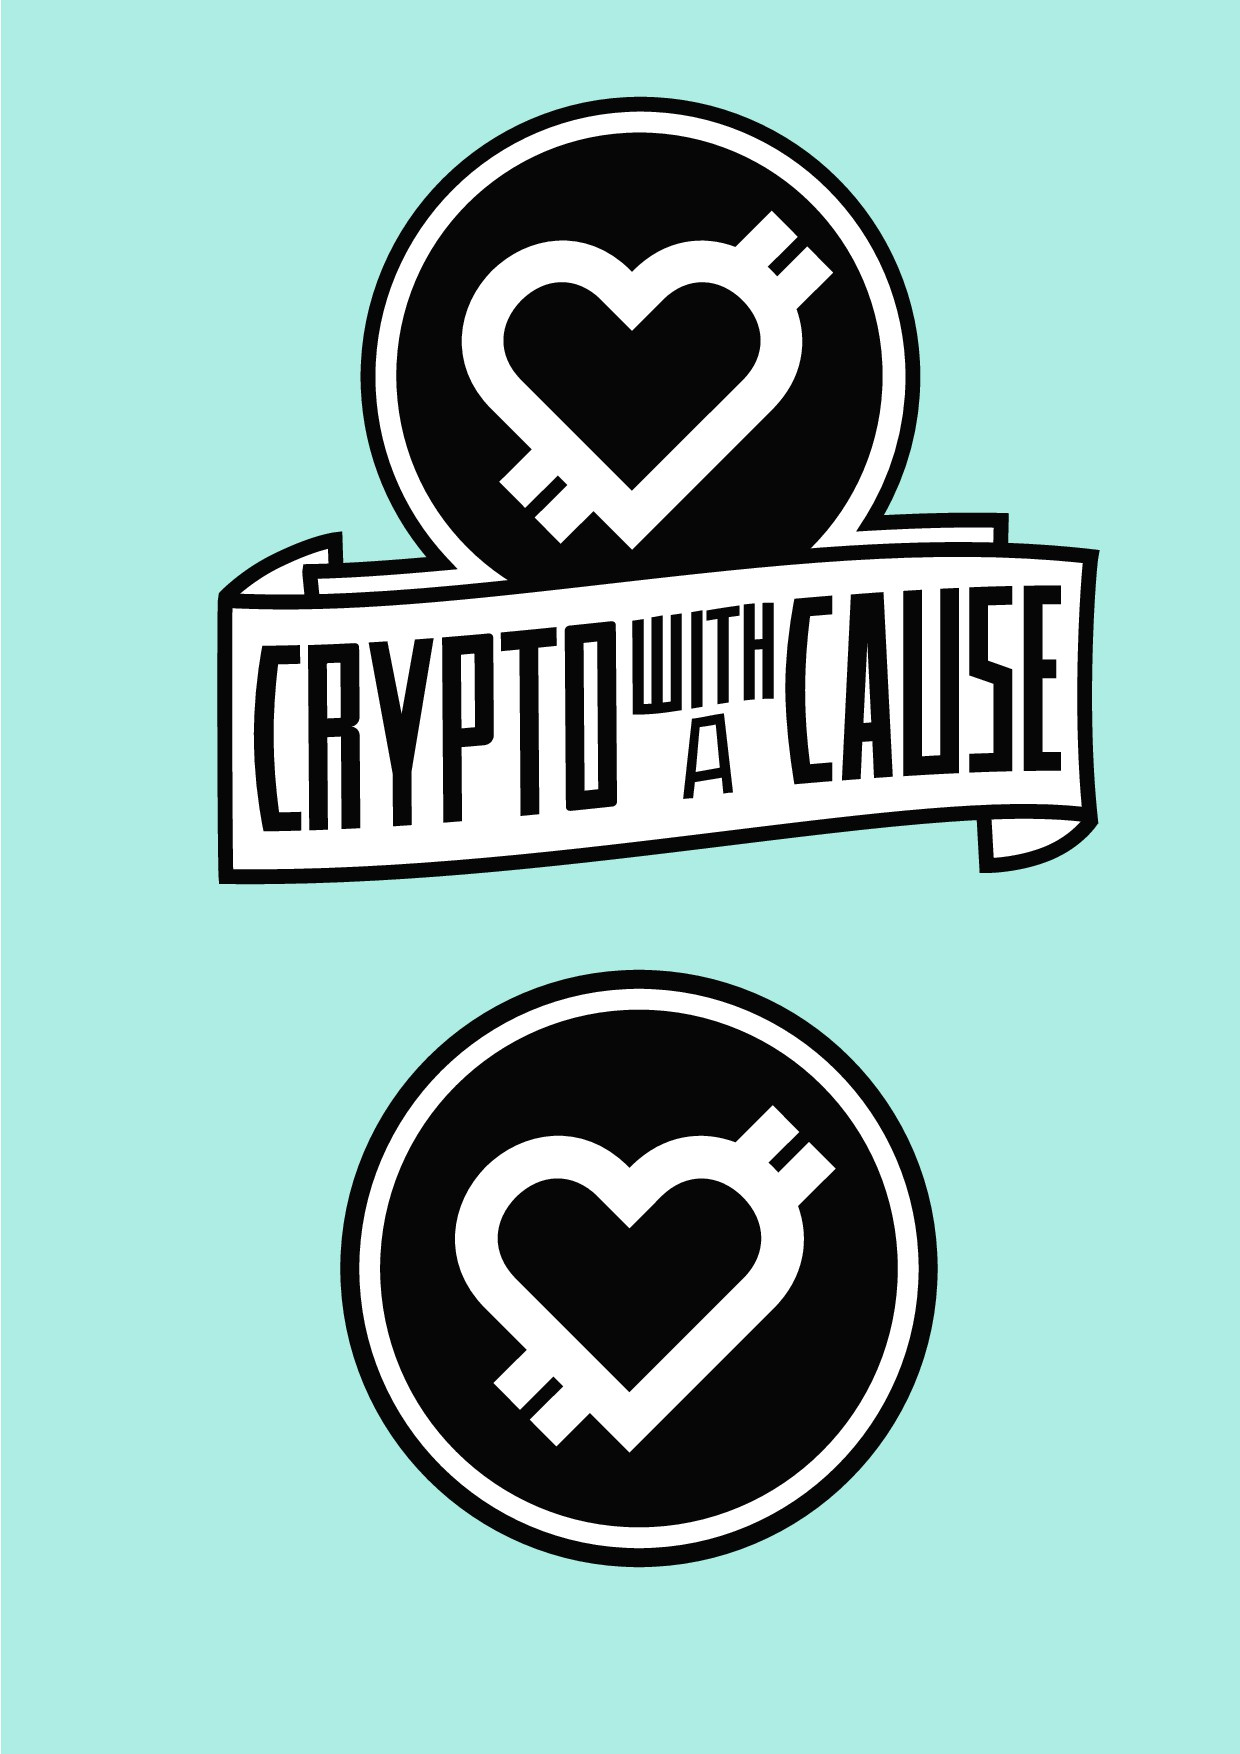 99nonprofits: Design a killer logo for  a crypto fundraising campaign for charity.